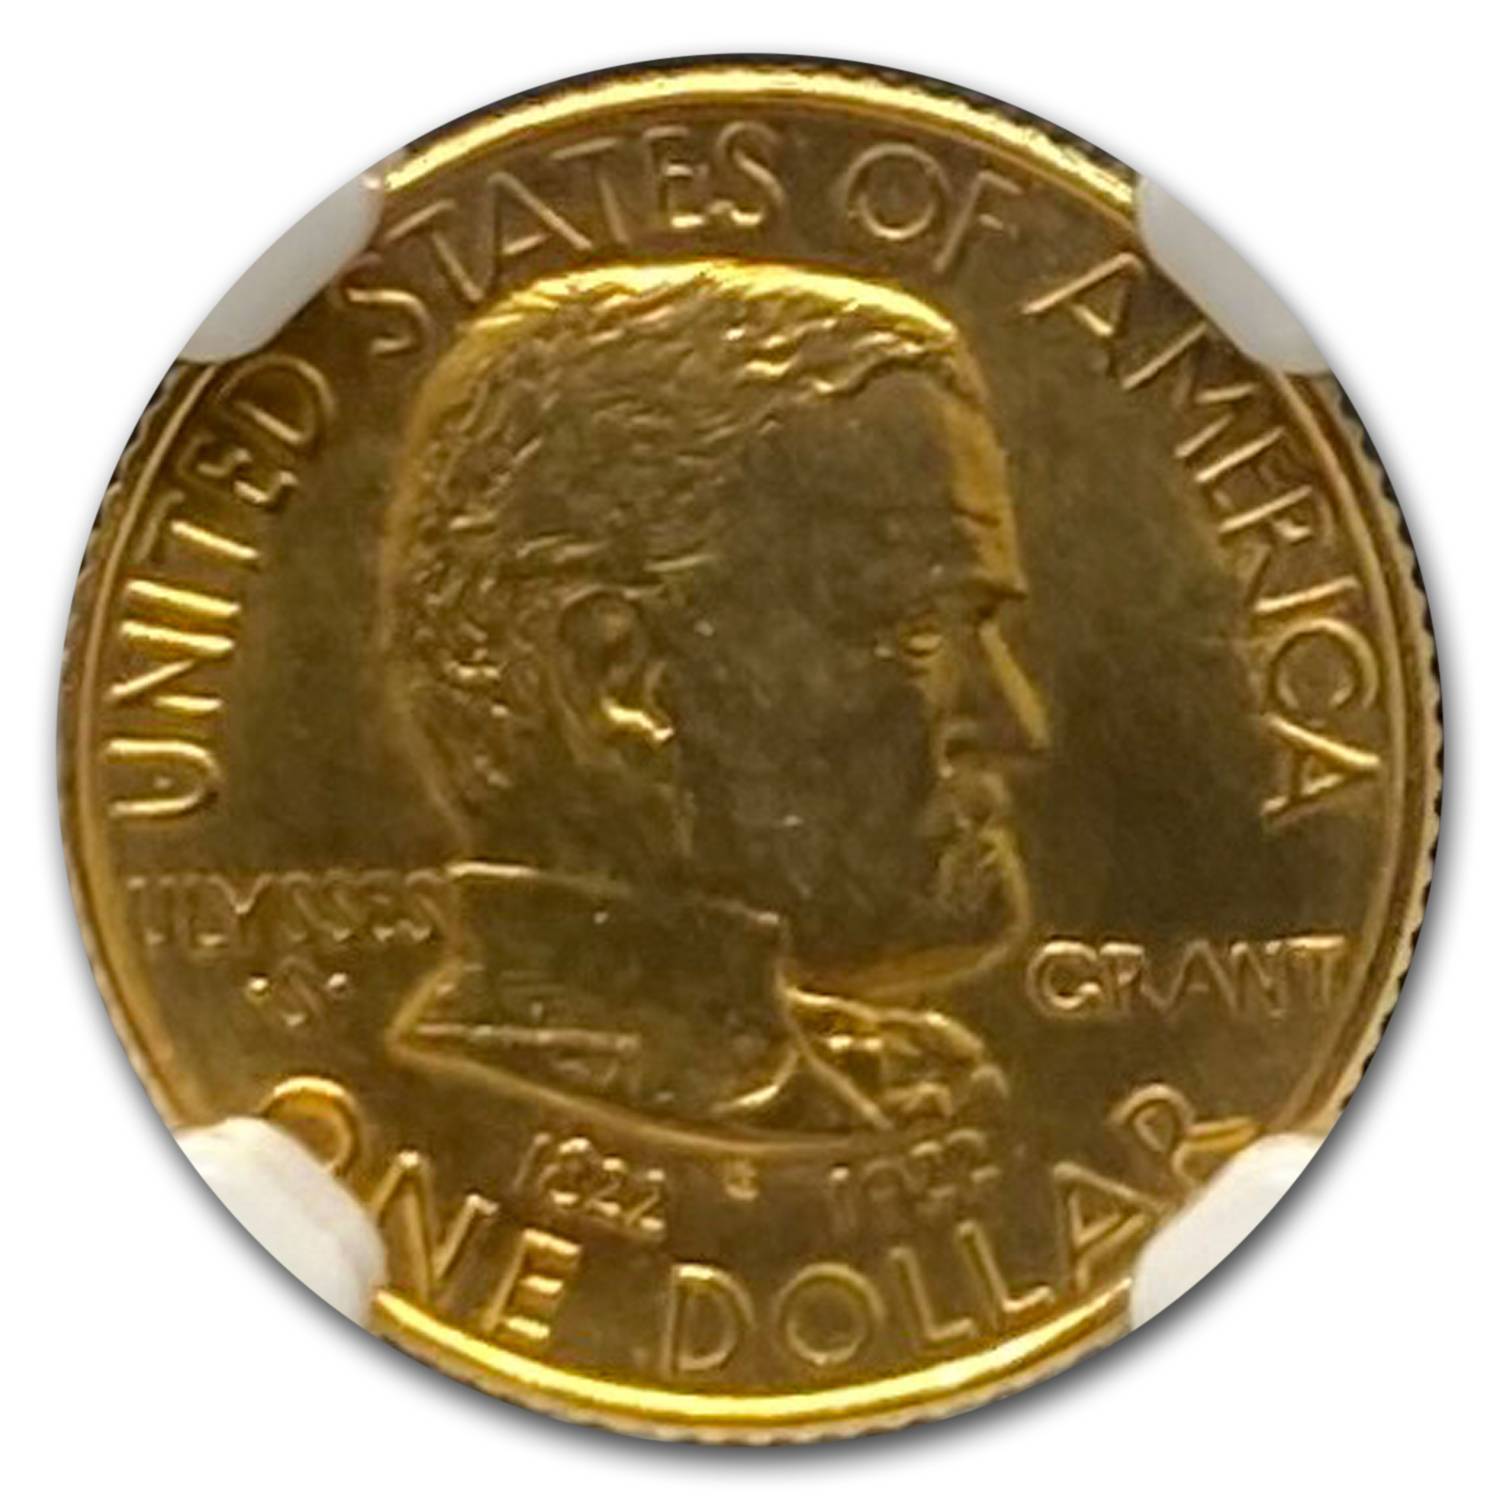 1922 Gold $1.00 Grant Commem MS-64 NGC (No Star)